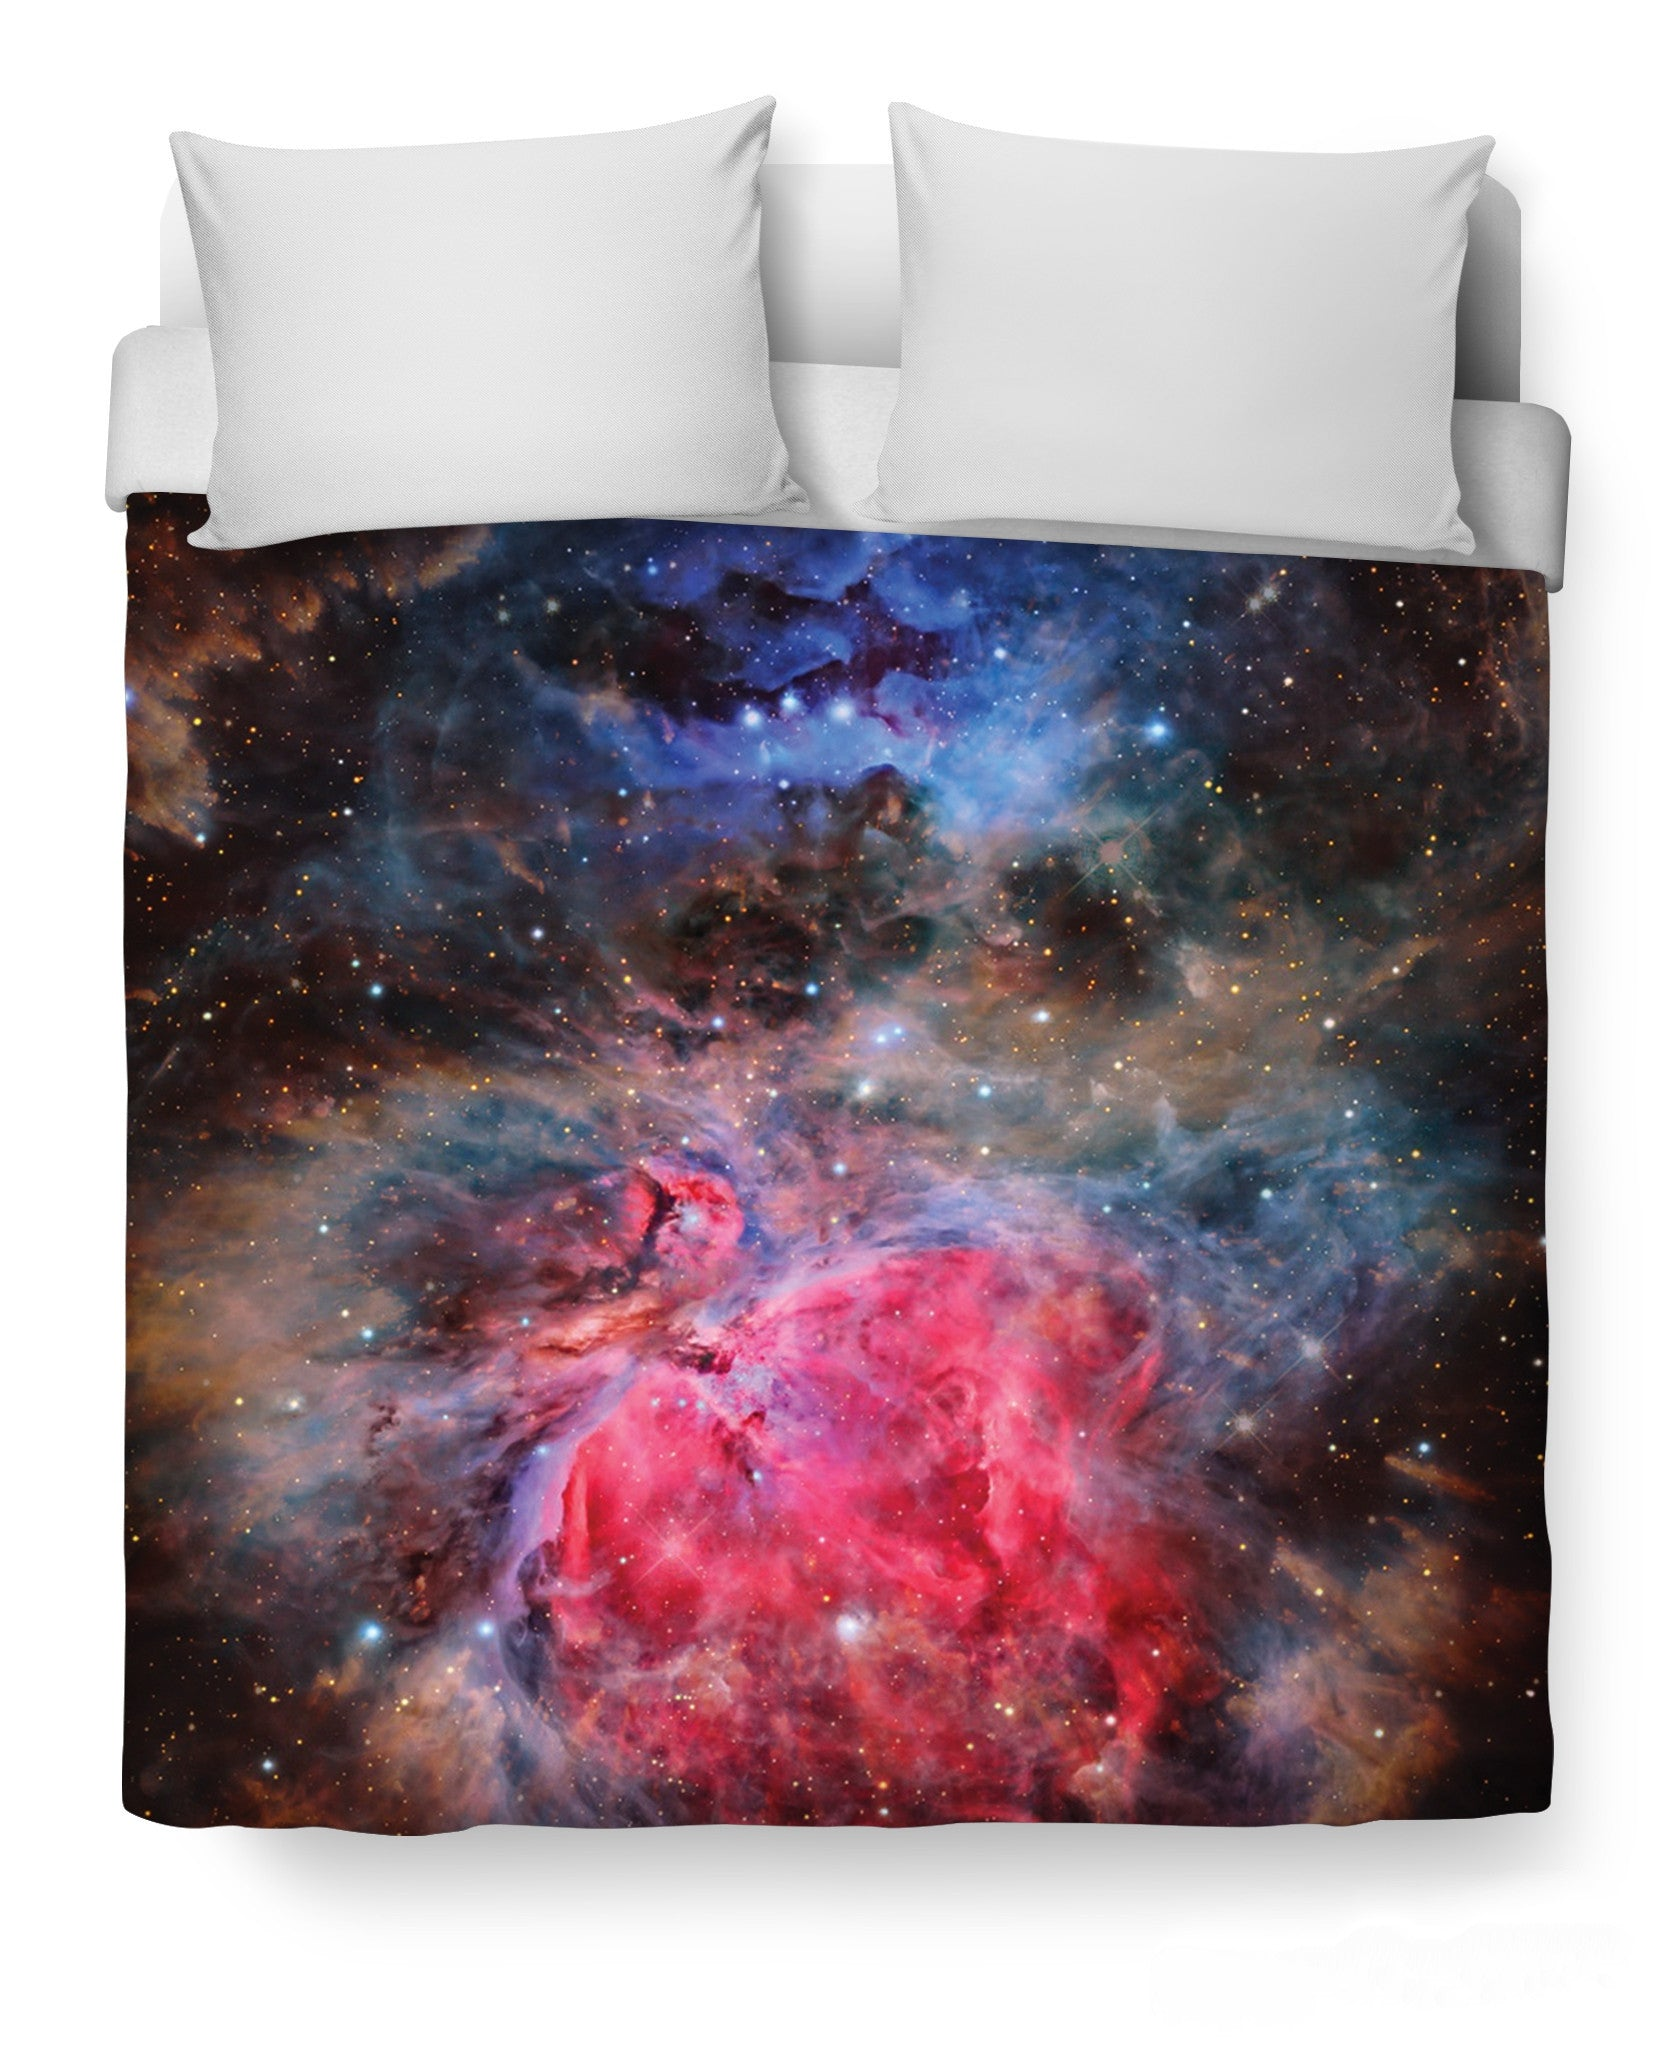 Heart of the Universe Duvet Cover - TShirtsRUS.co